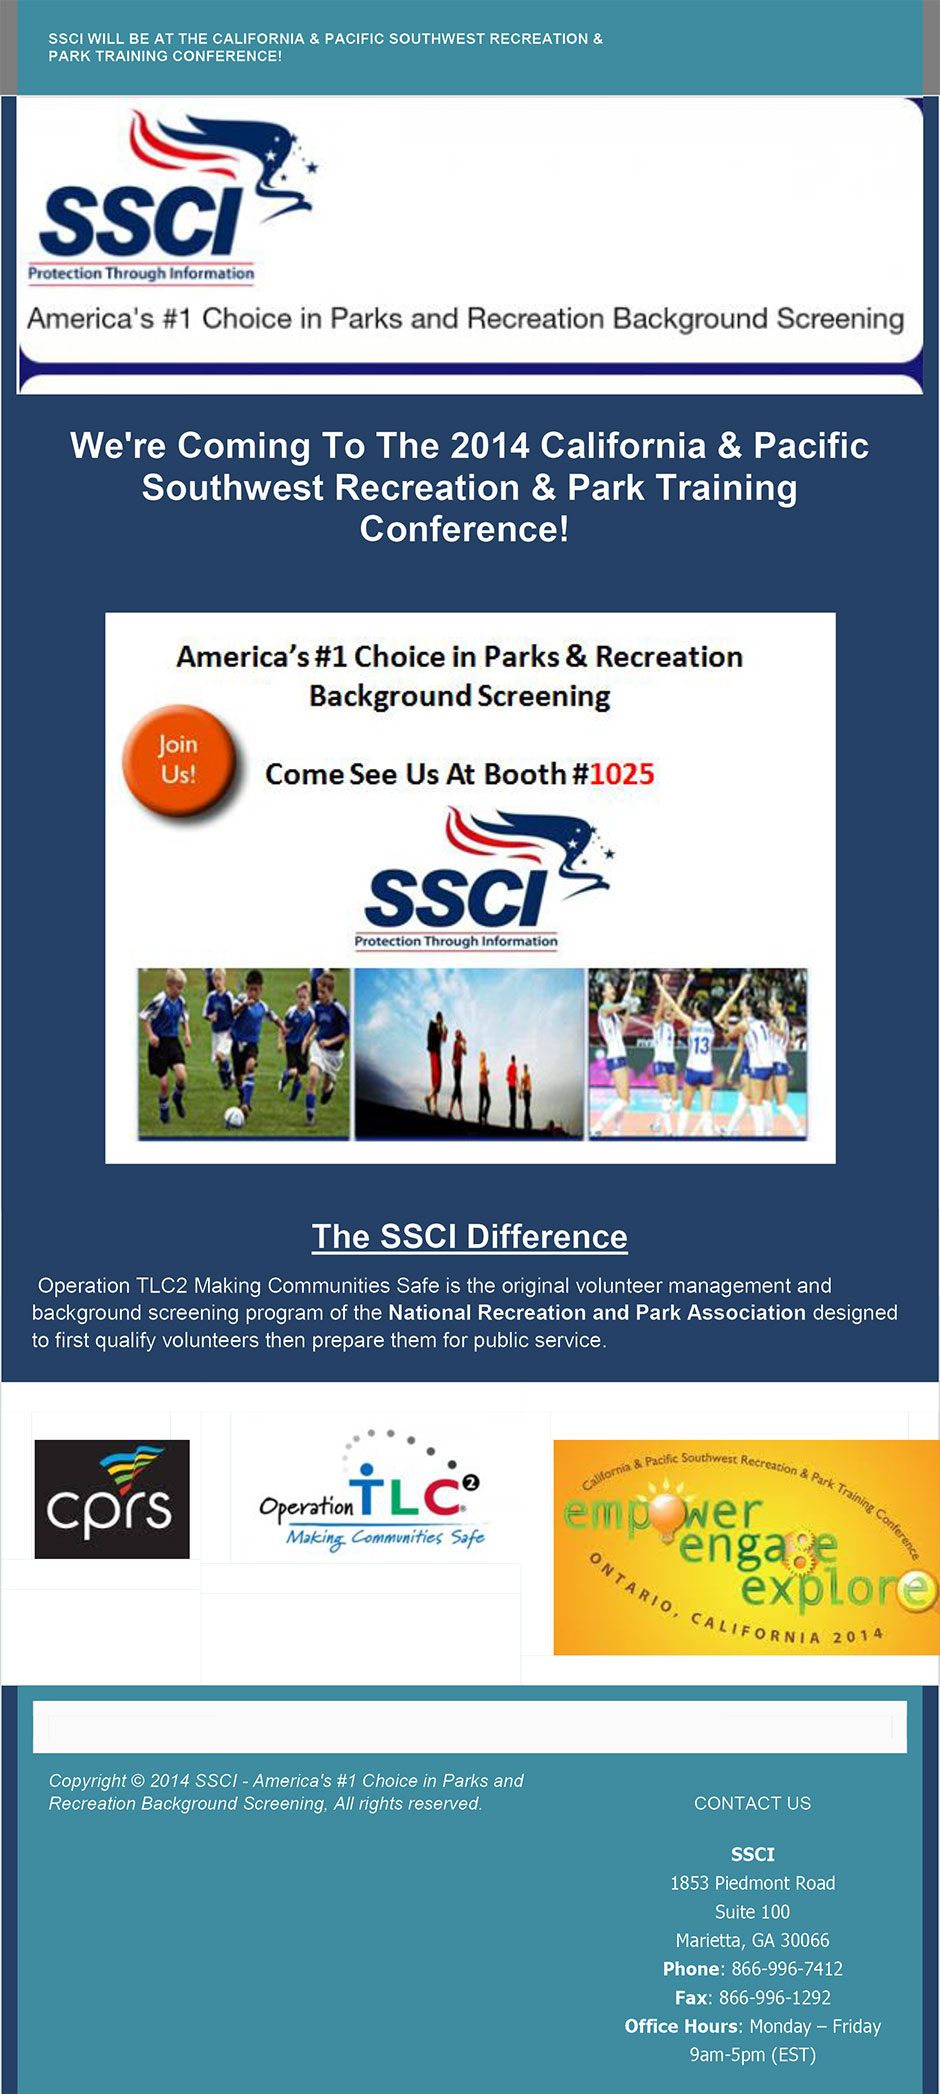 ssci conference